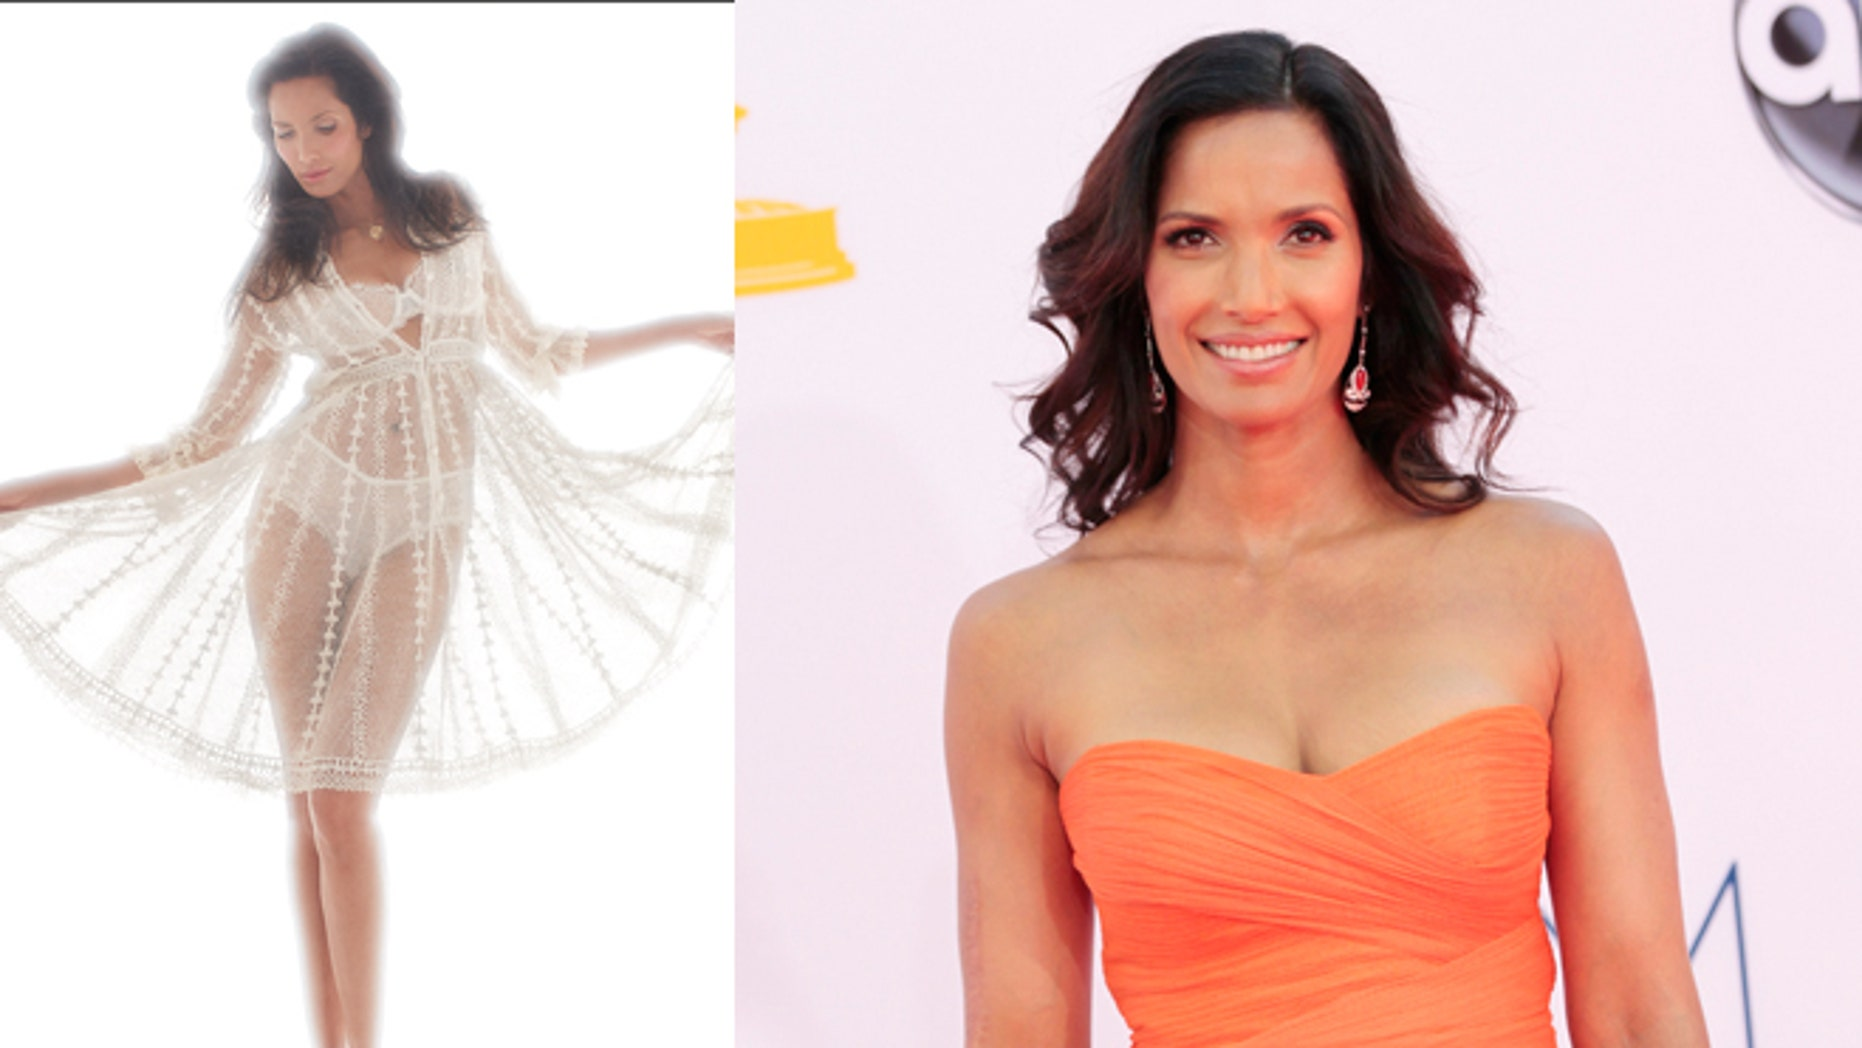 Padma Lakshmi talks about food and dating in the December issue of Playboy.